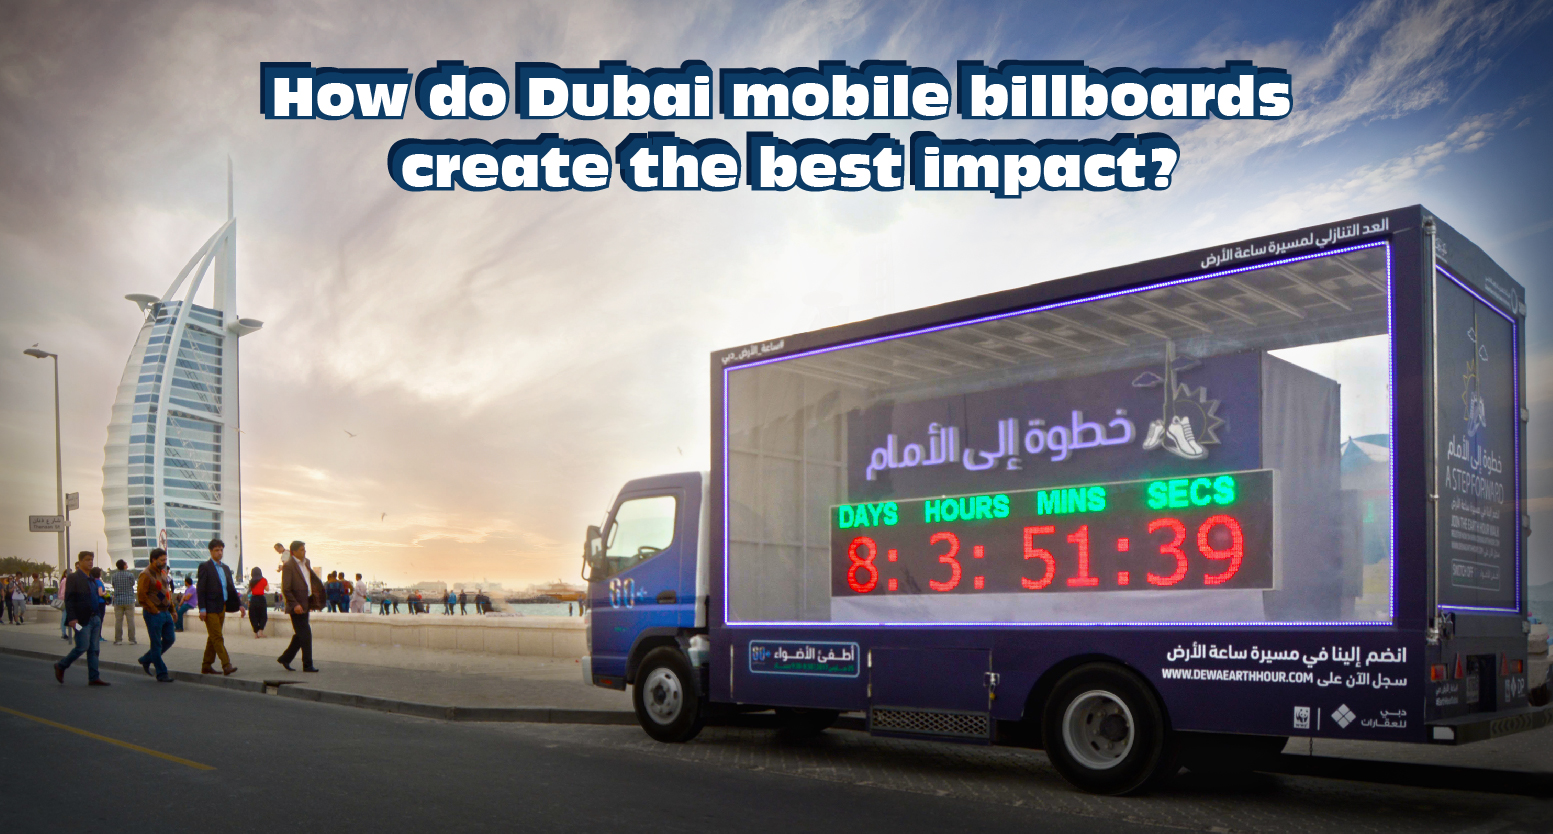 How do Dubai mobile billboards create the best impact?